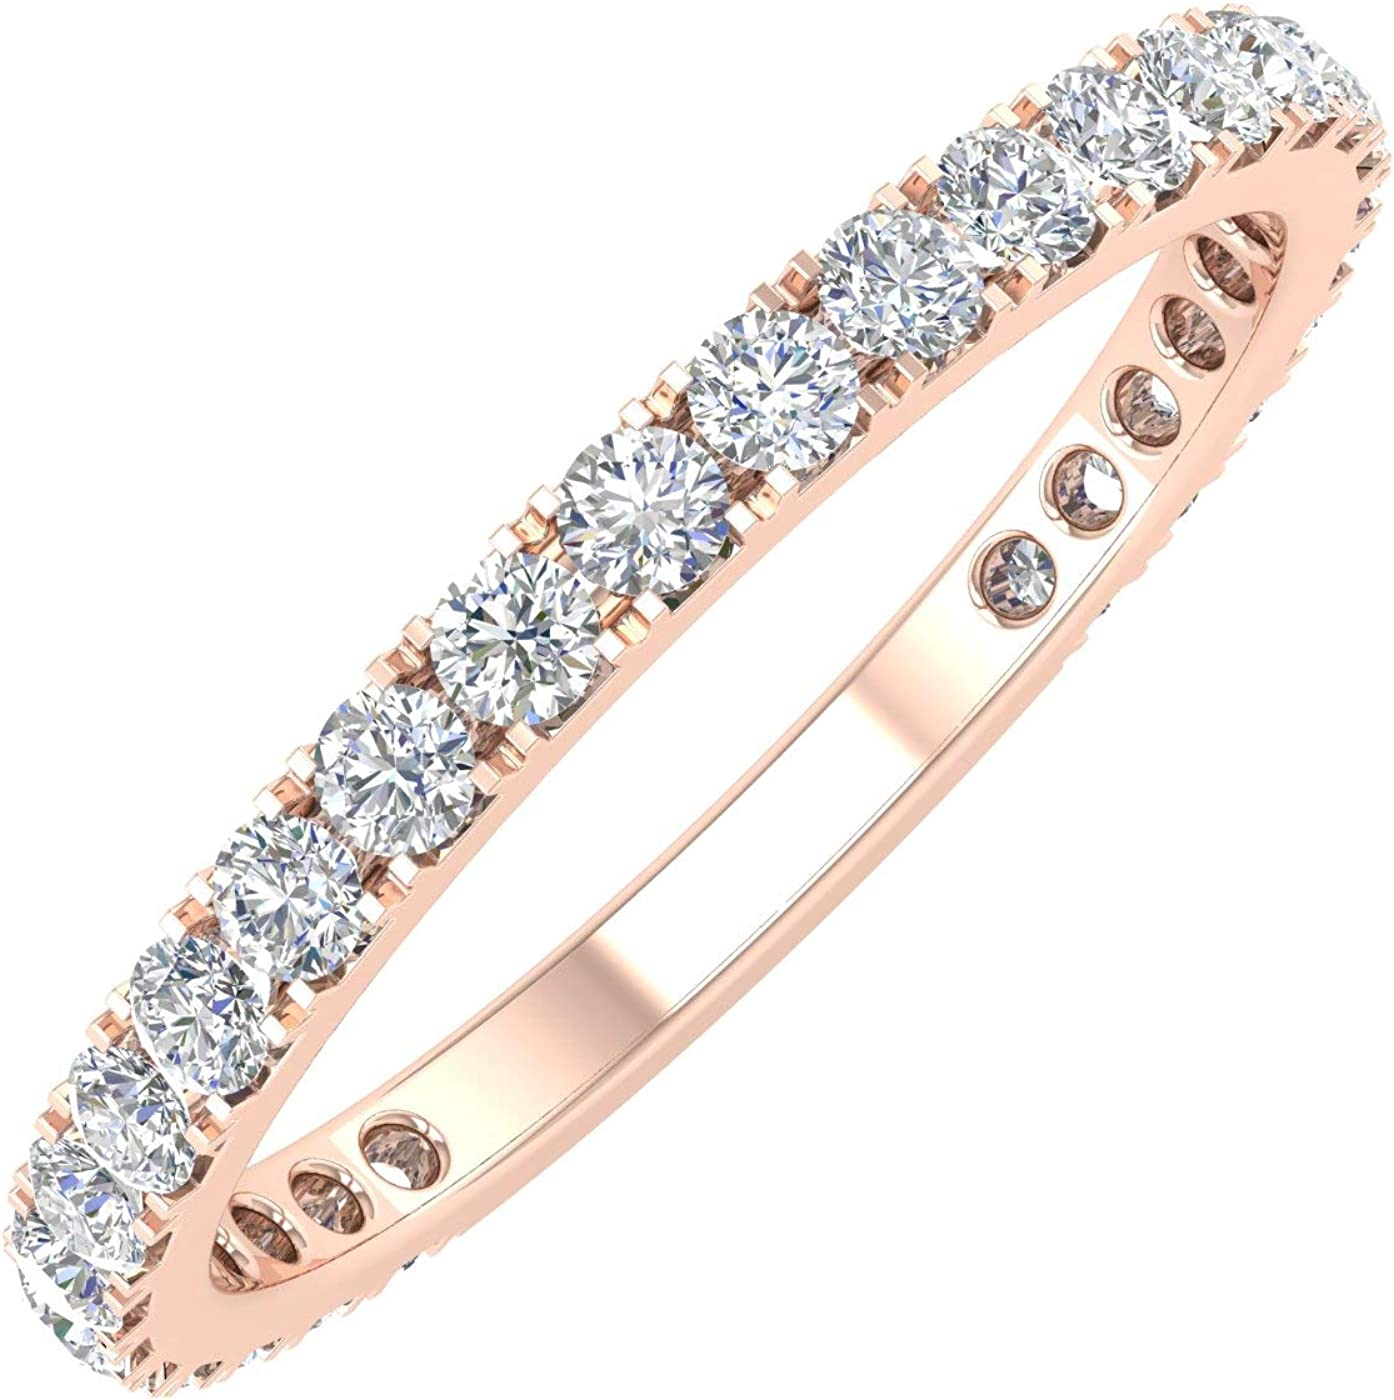 This is a graphic of 388/388 Carat Diamond 38/38 Eternity Wedding Band Ring in 38838K Gold